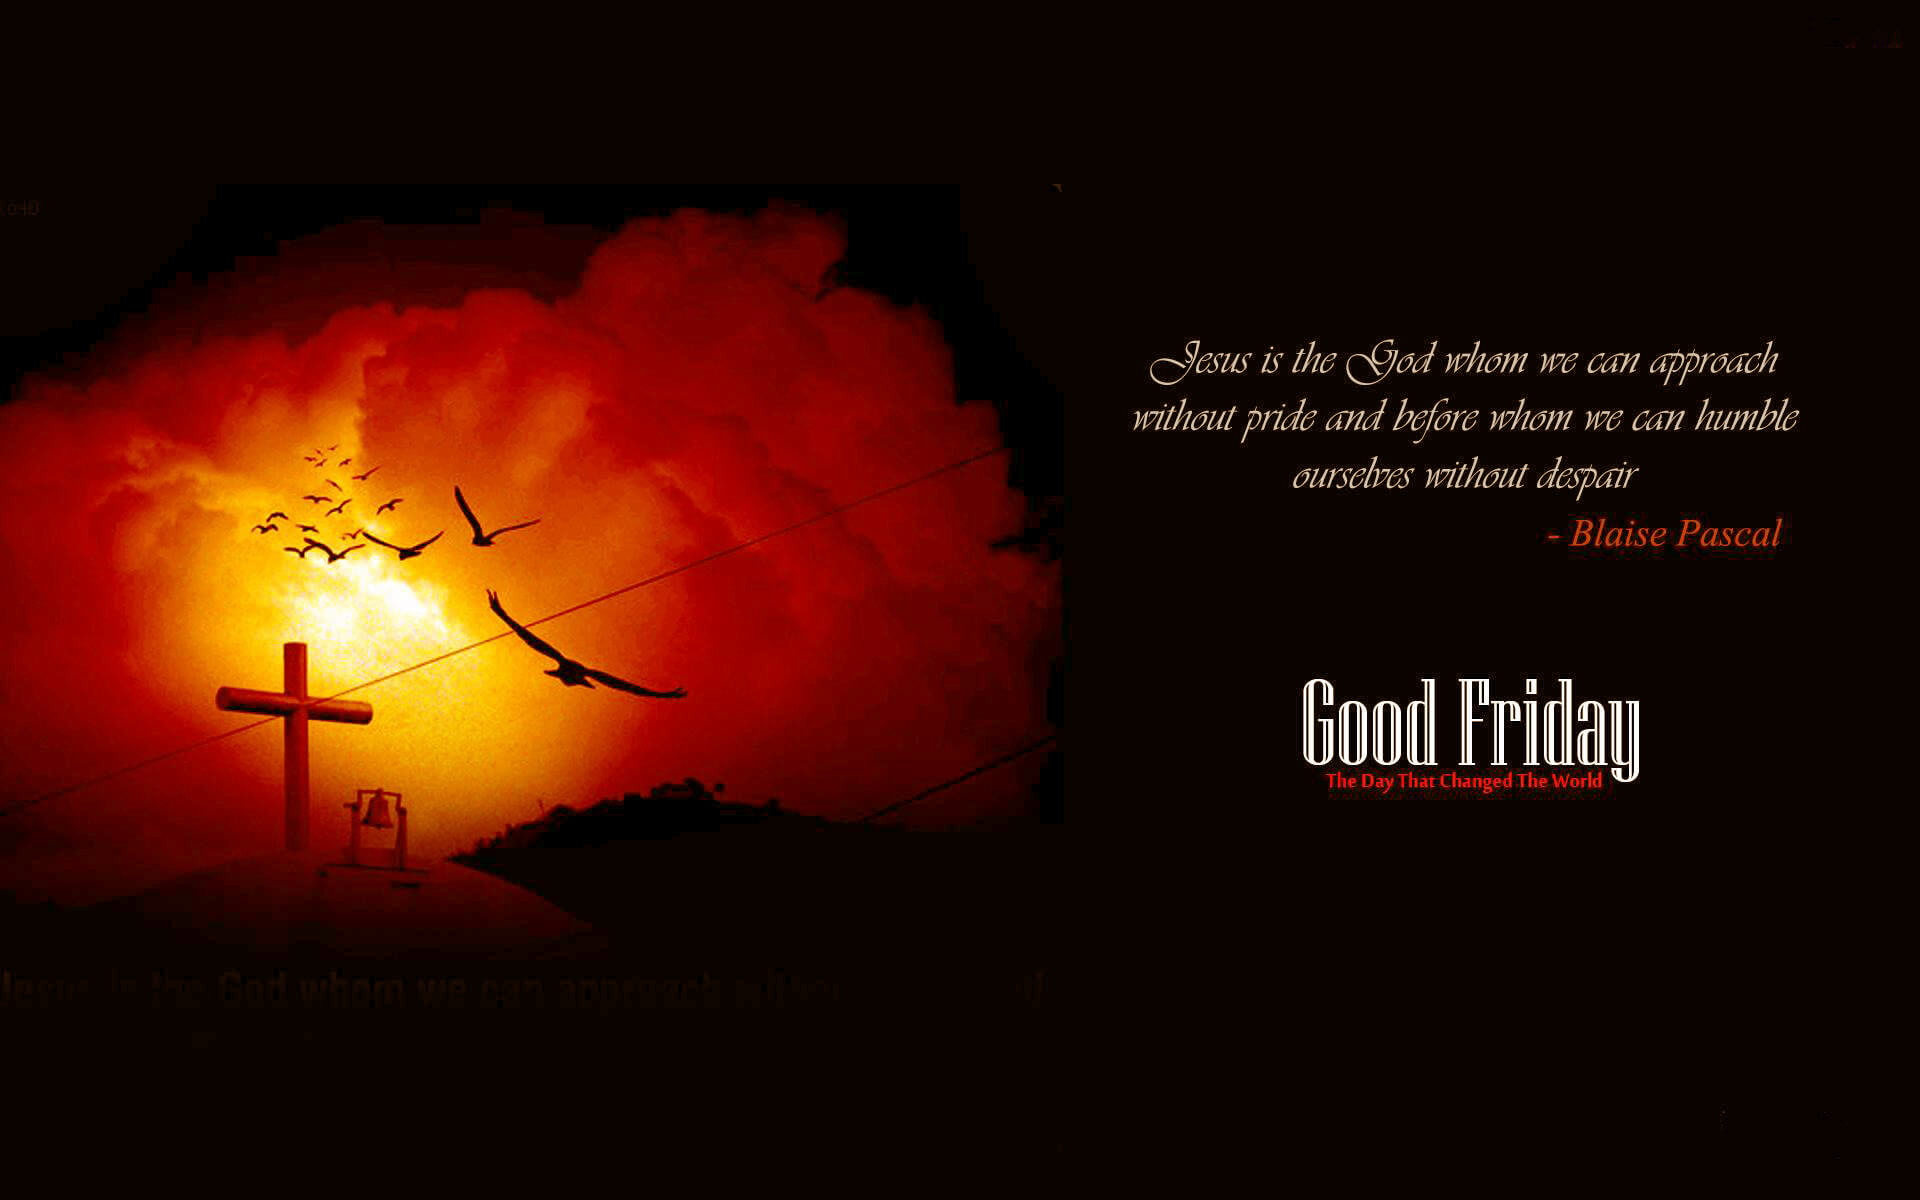 good friday message quote blaise pascal hd free wallpaper